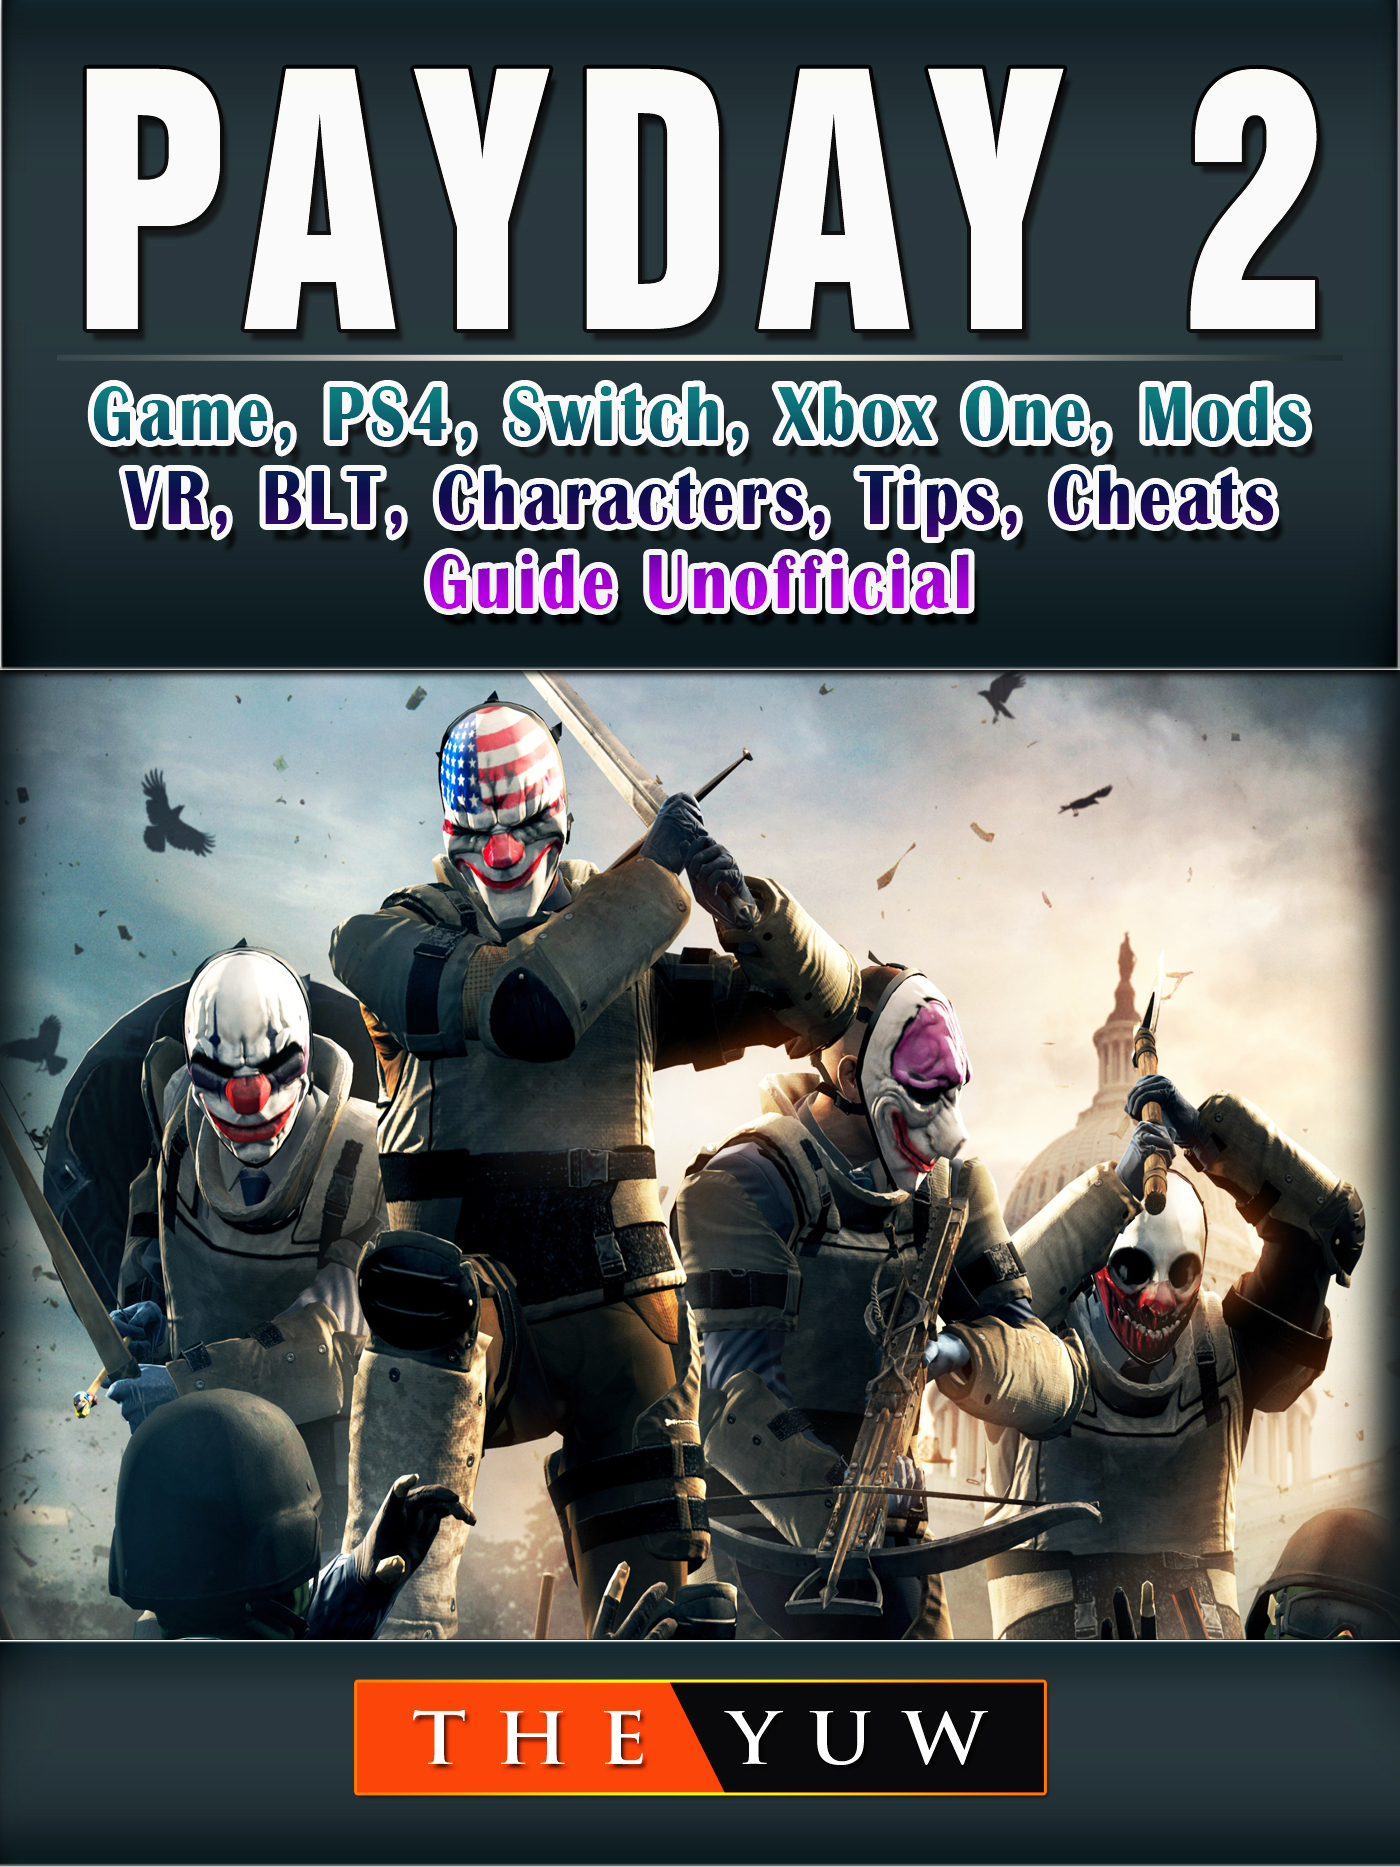 PayDay 2 Game, PS4, Switch, Xbox One, Mods, VR, BLT, Characters, Tips, Cheats, Guide Unofficial By The Yuw